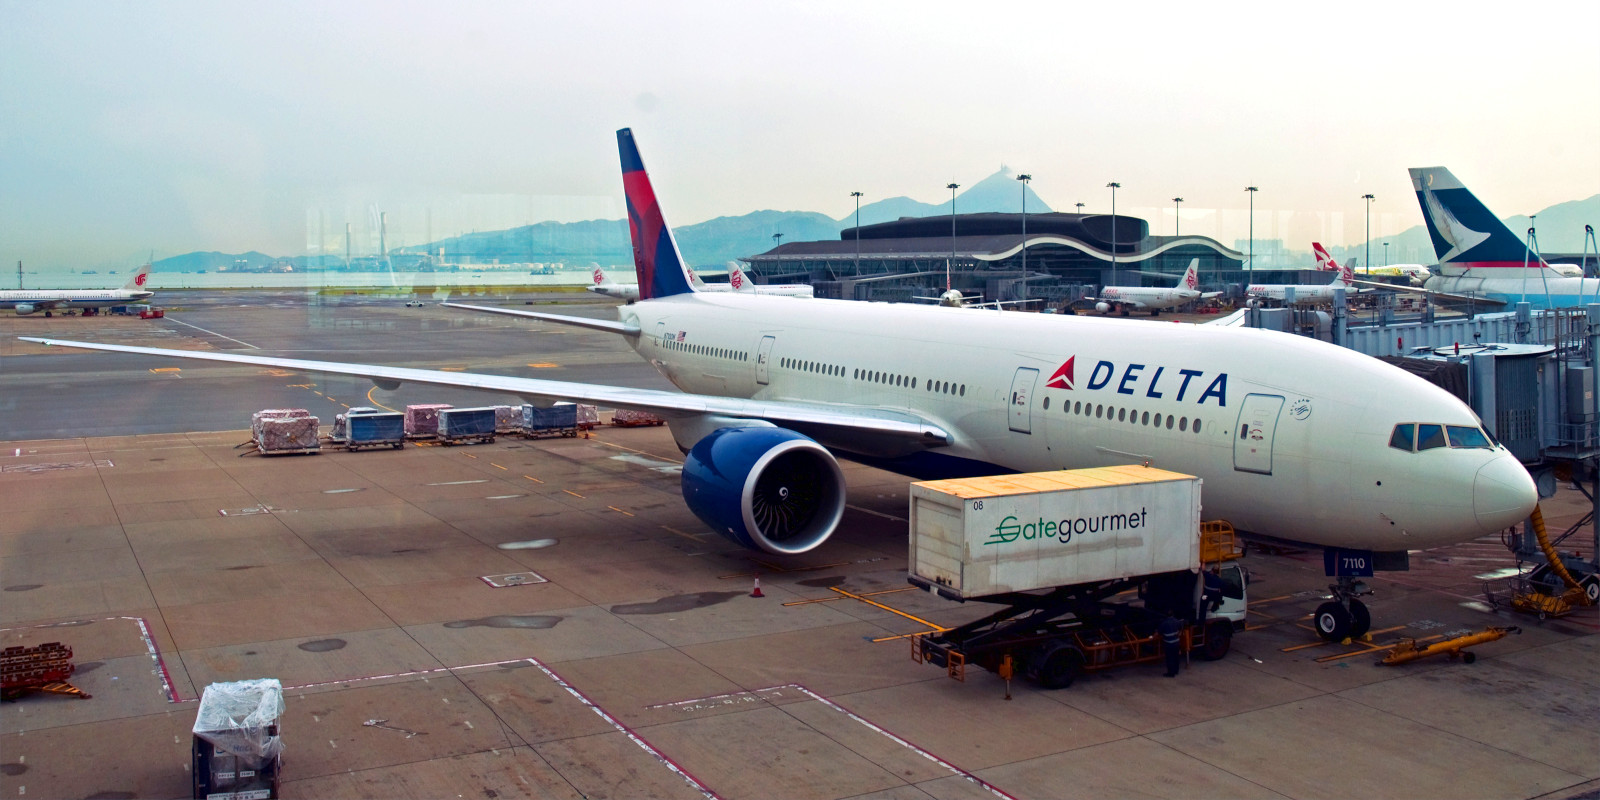 A Delta airliner preparing for take-off.